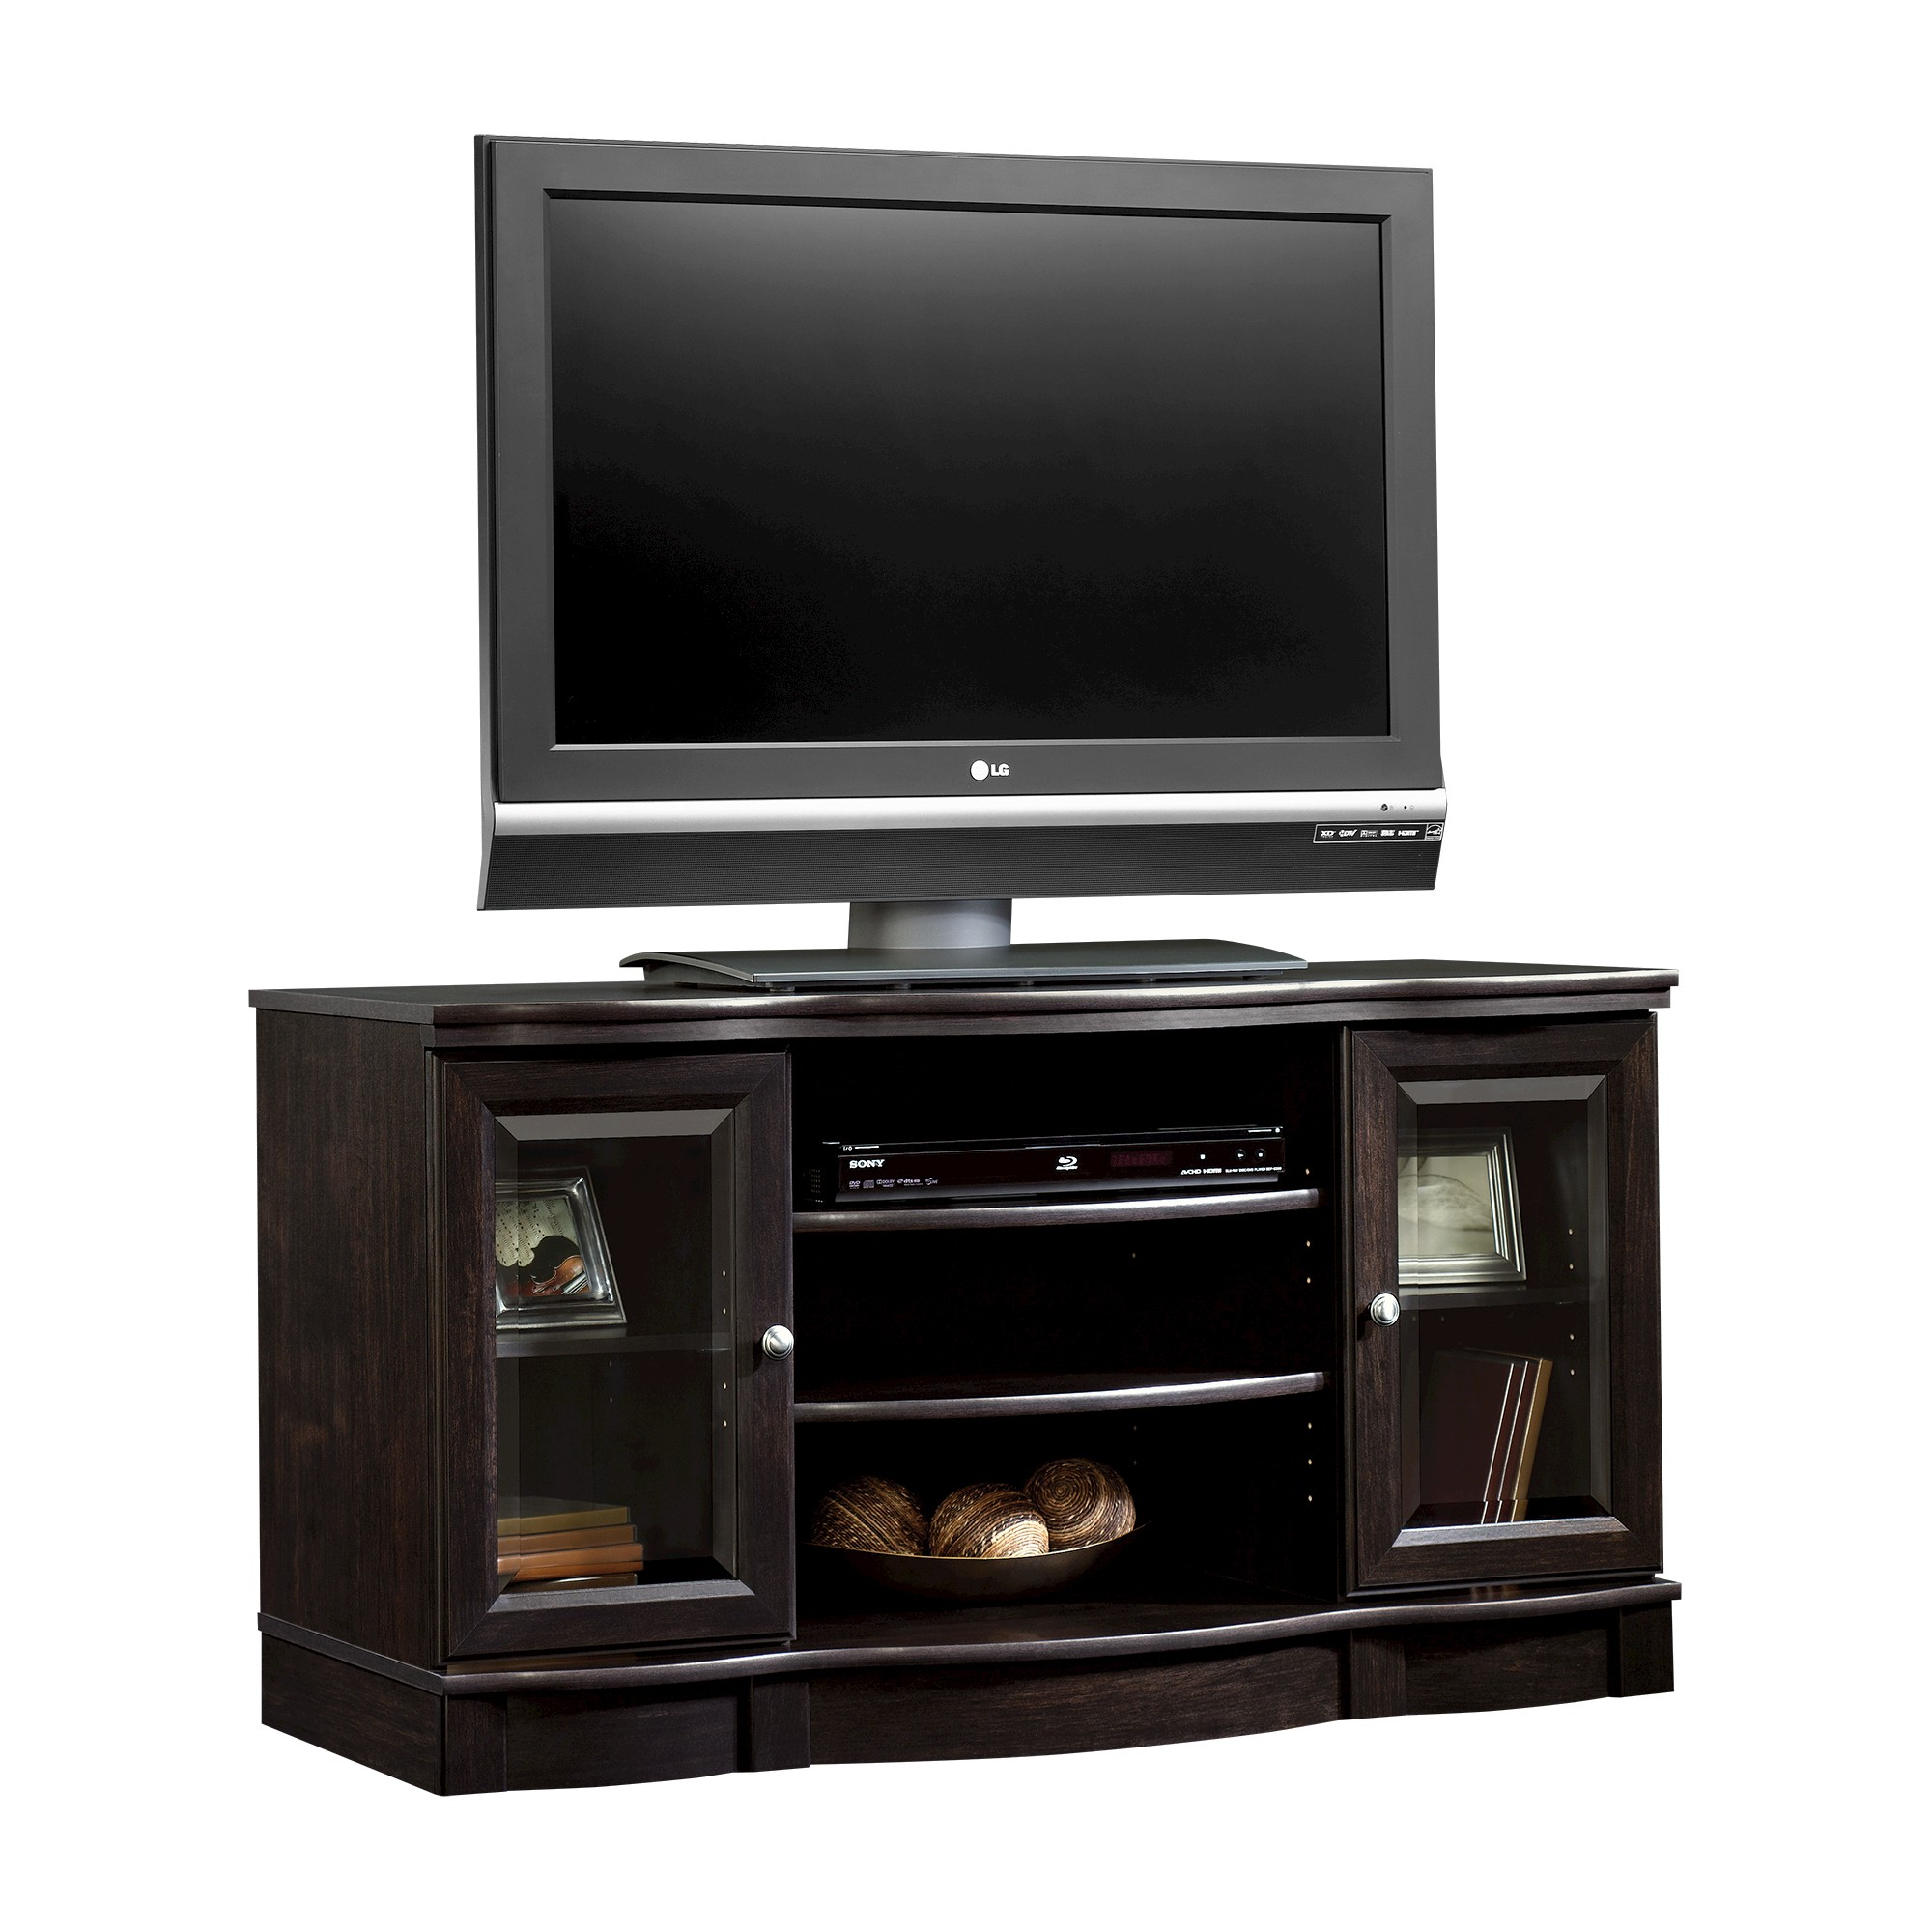 """Regent Place Panel Tv Stand For Tvs Up To 50"""" Estate Black Throughout Aaliyah Floating Tv Stands For Tvs Up To 50"""" (View 14 of 15)"""